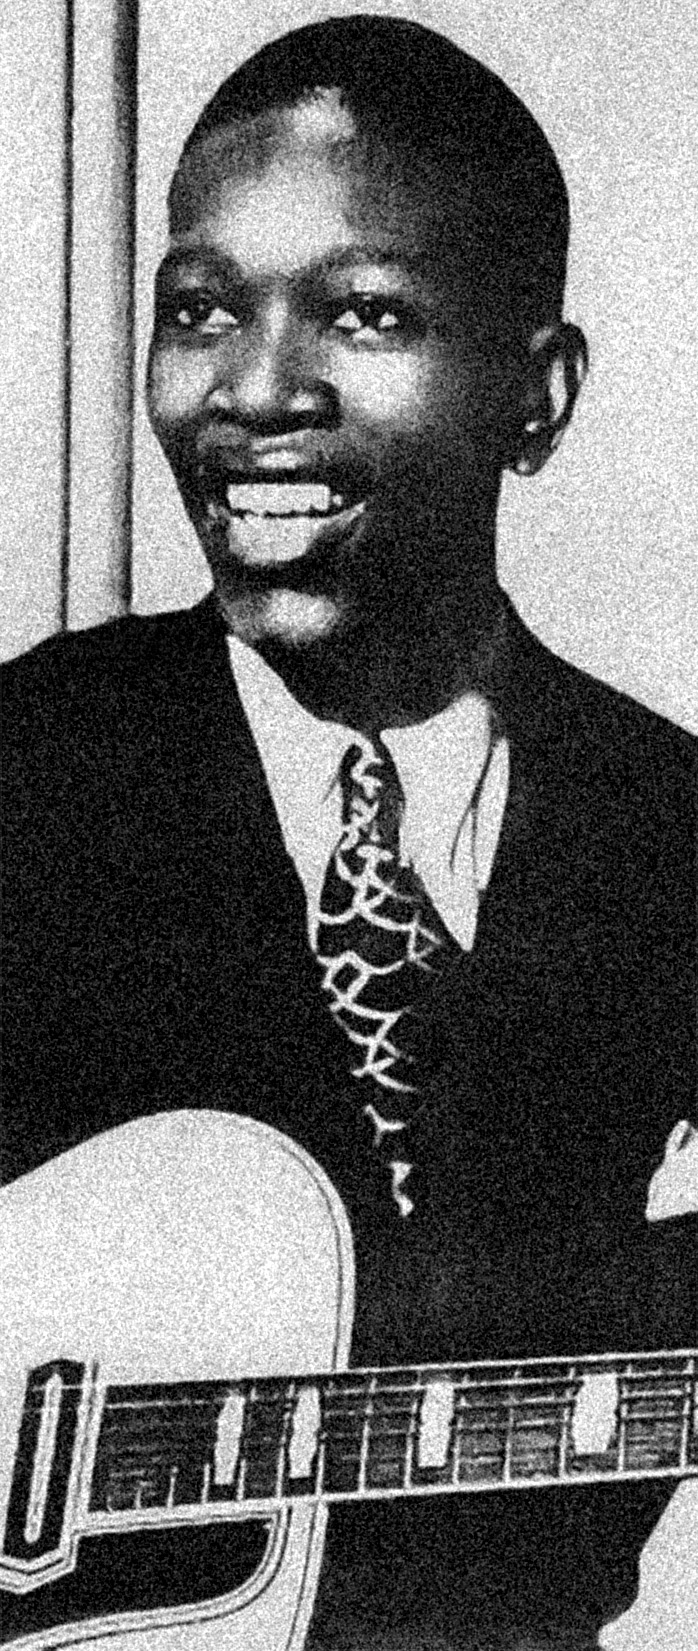 Charlie Christian July 29, 1916 – March 2, 1942), a guitarist.